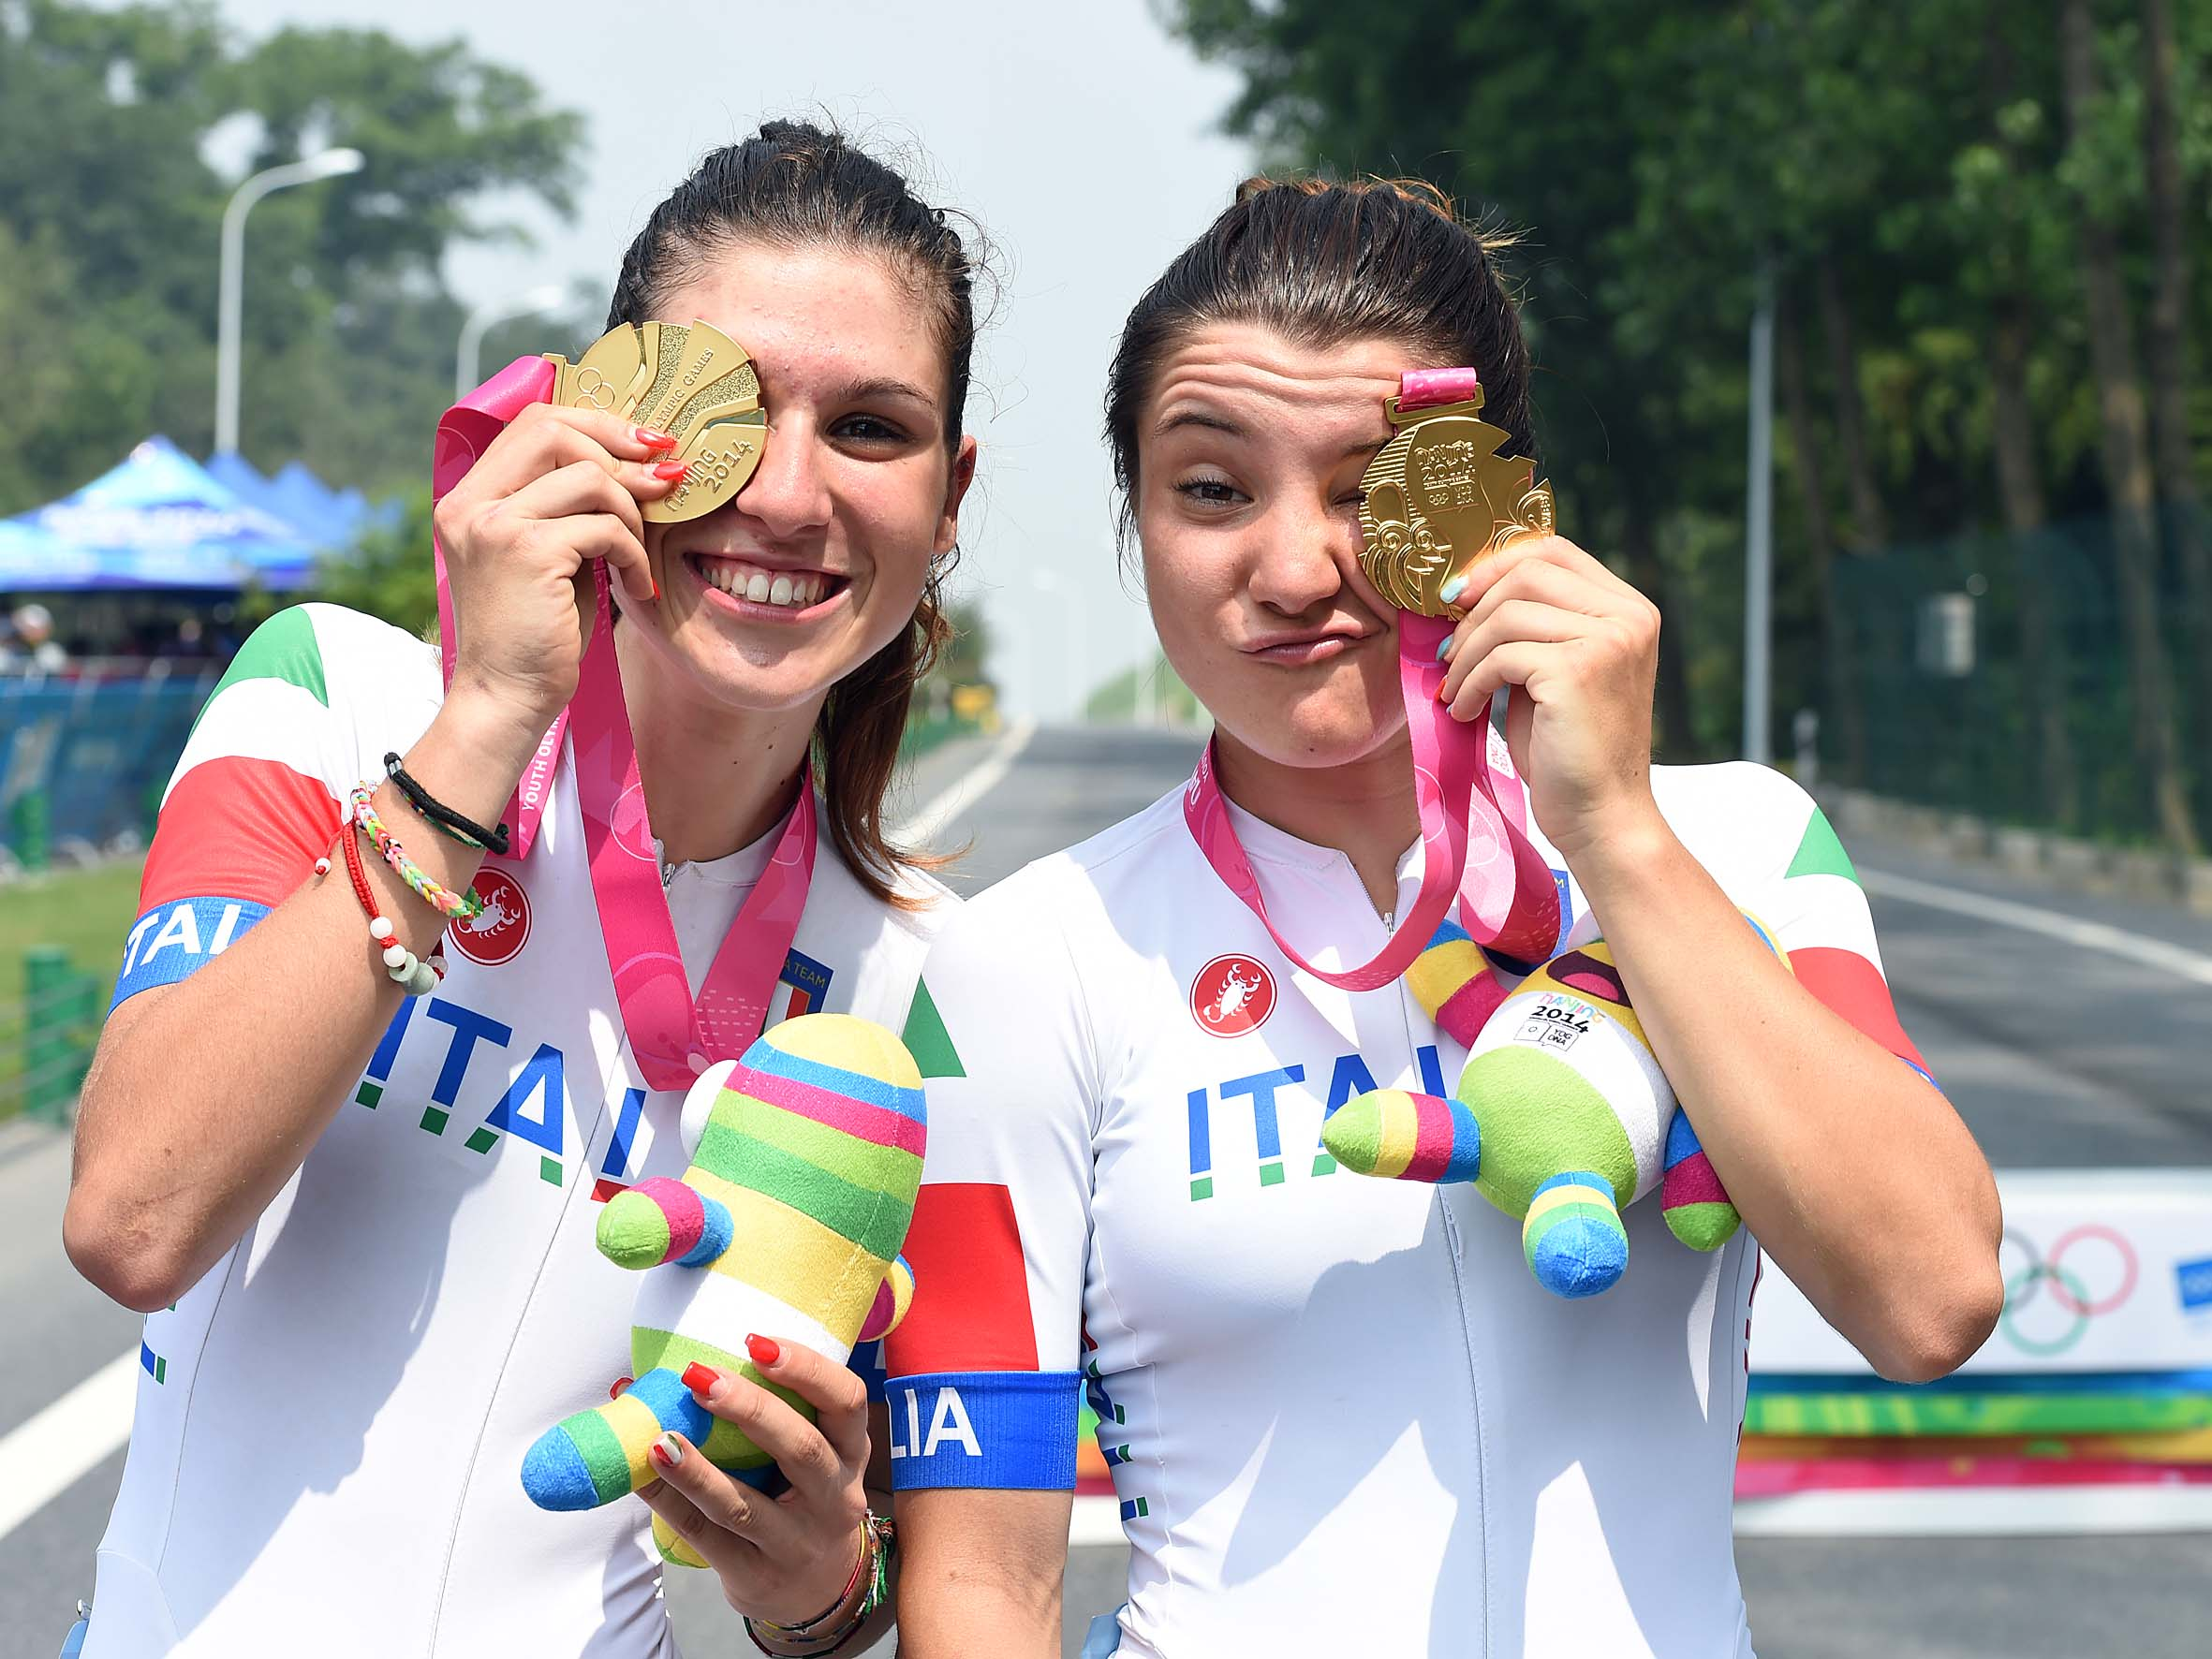 Ciclismo donne 44